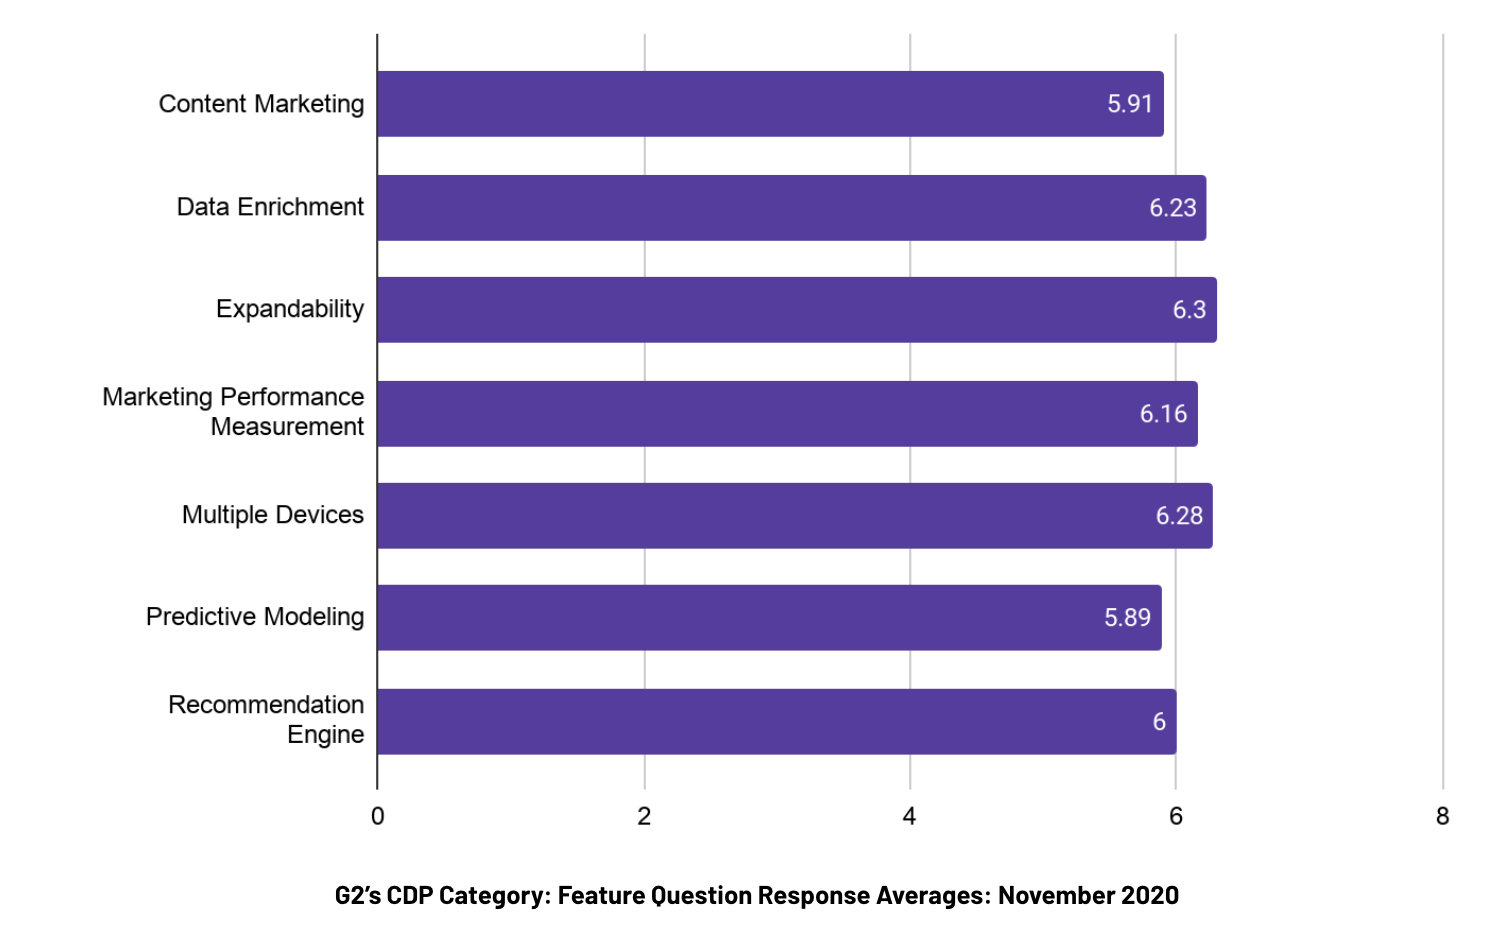 graph showing the averages of feature question responses in G2's CDP category